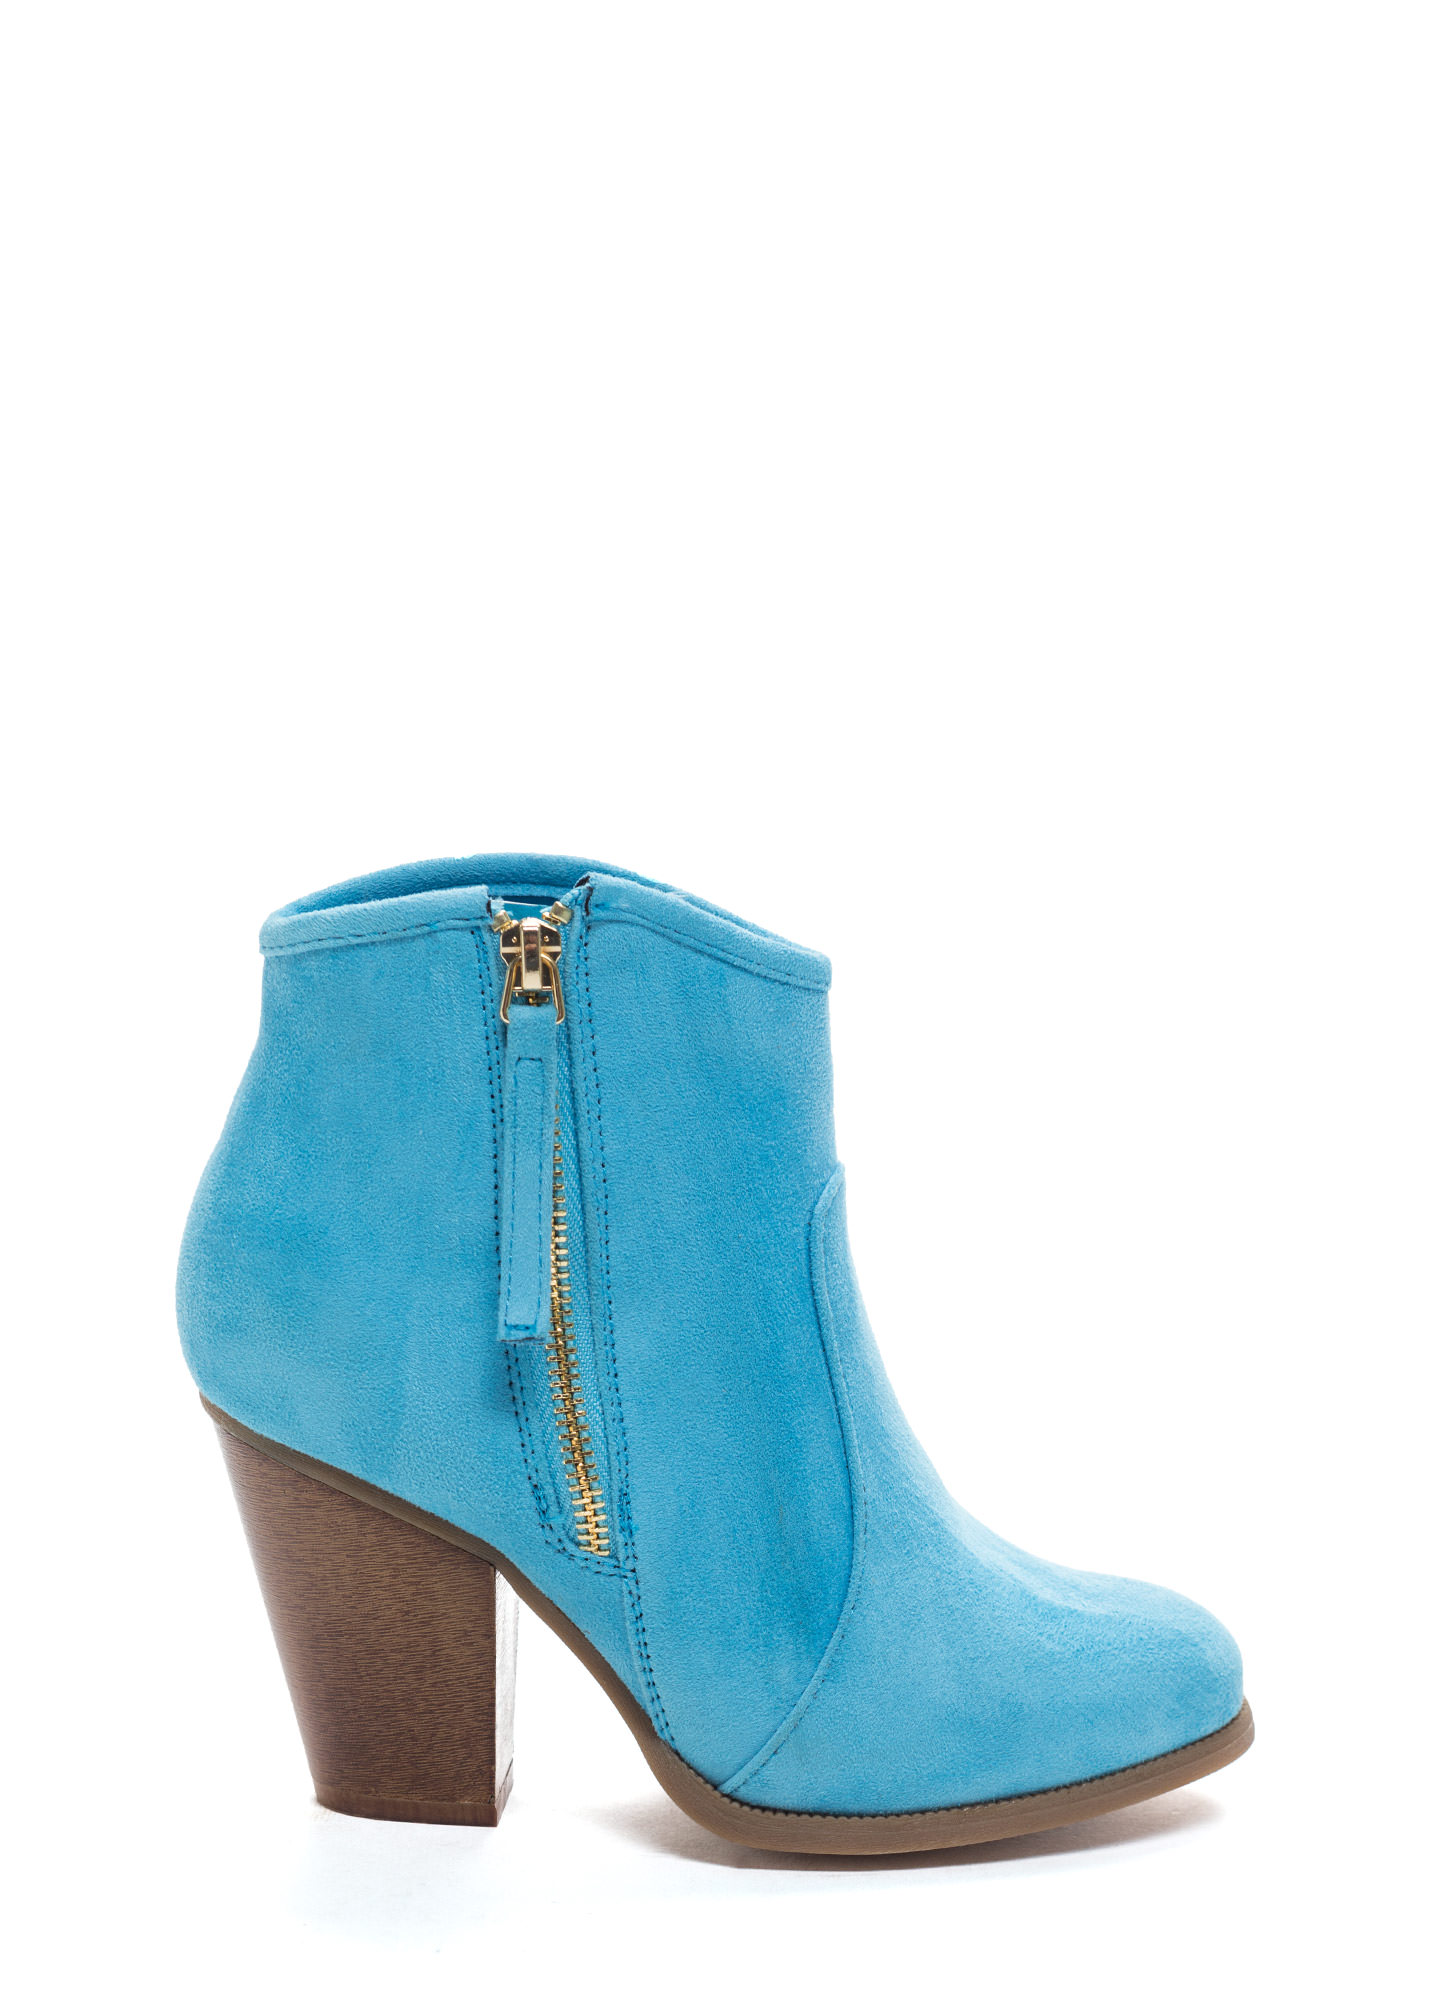 Zipped To The Top Chunky Booties BLUE